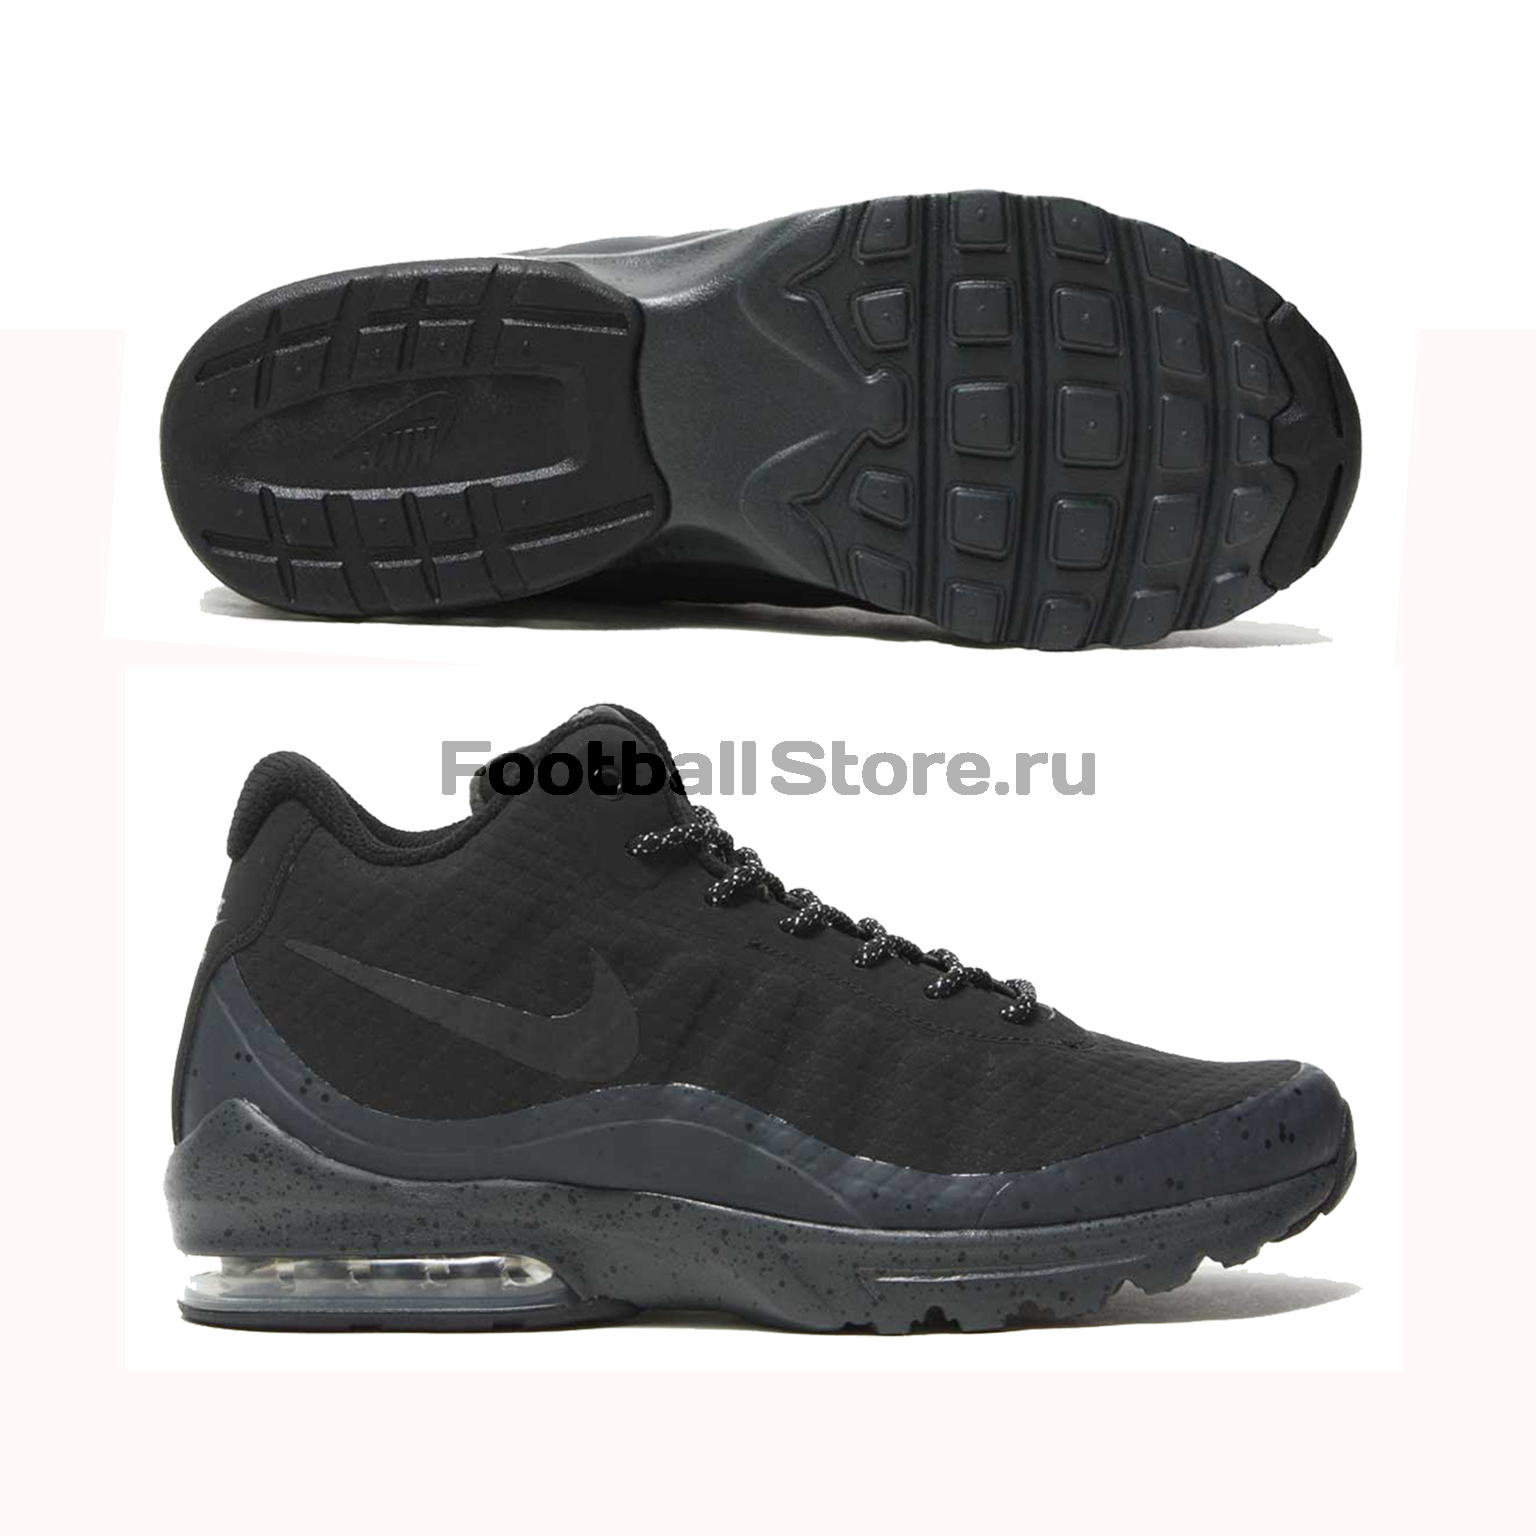 Кроссовки Nike AIR MAX Invigor Mid 858654-004 бра idlamp 406 406 1a blackchrome